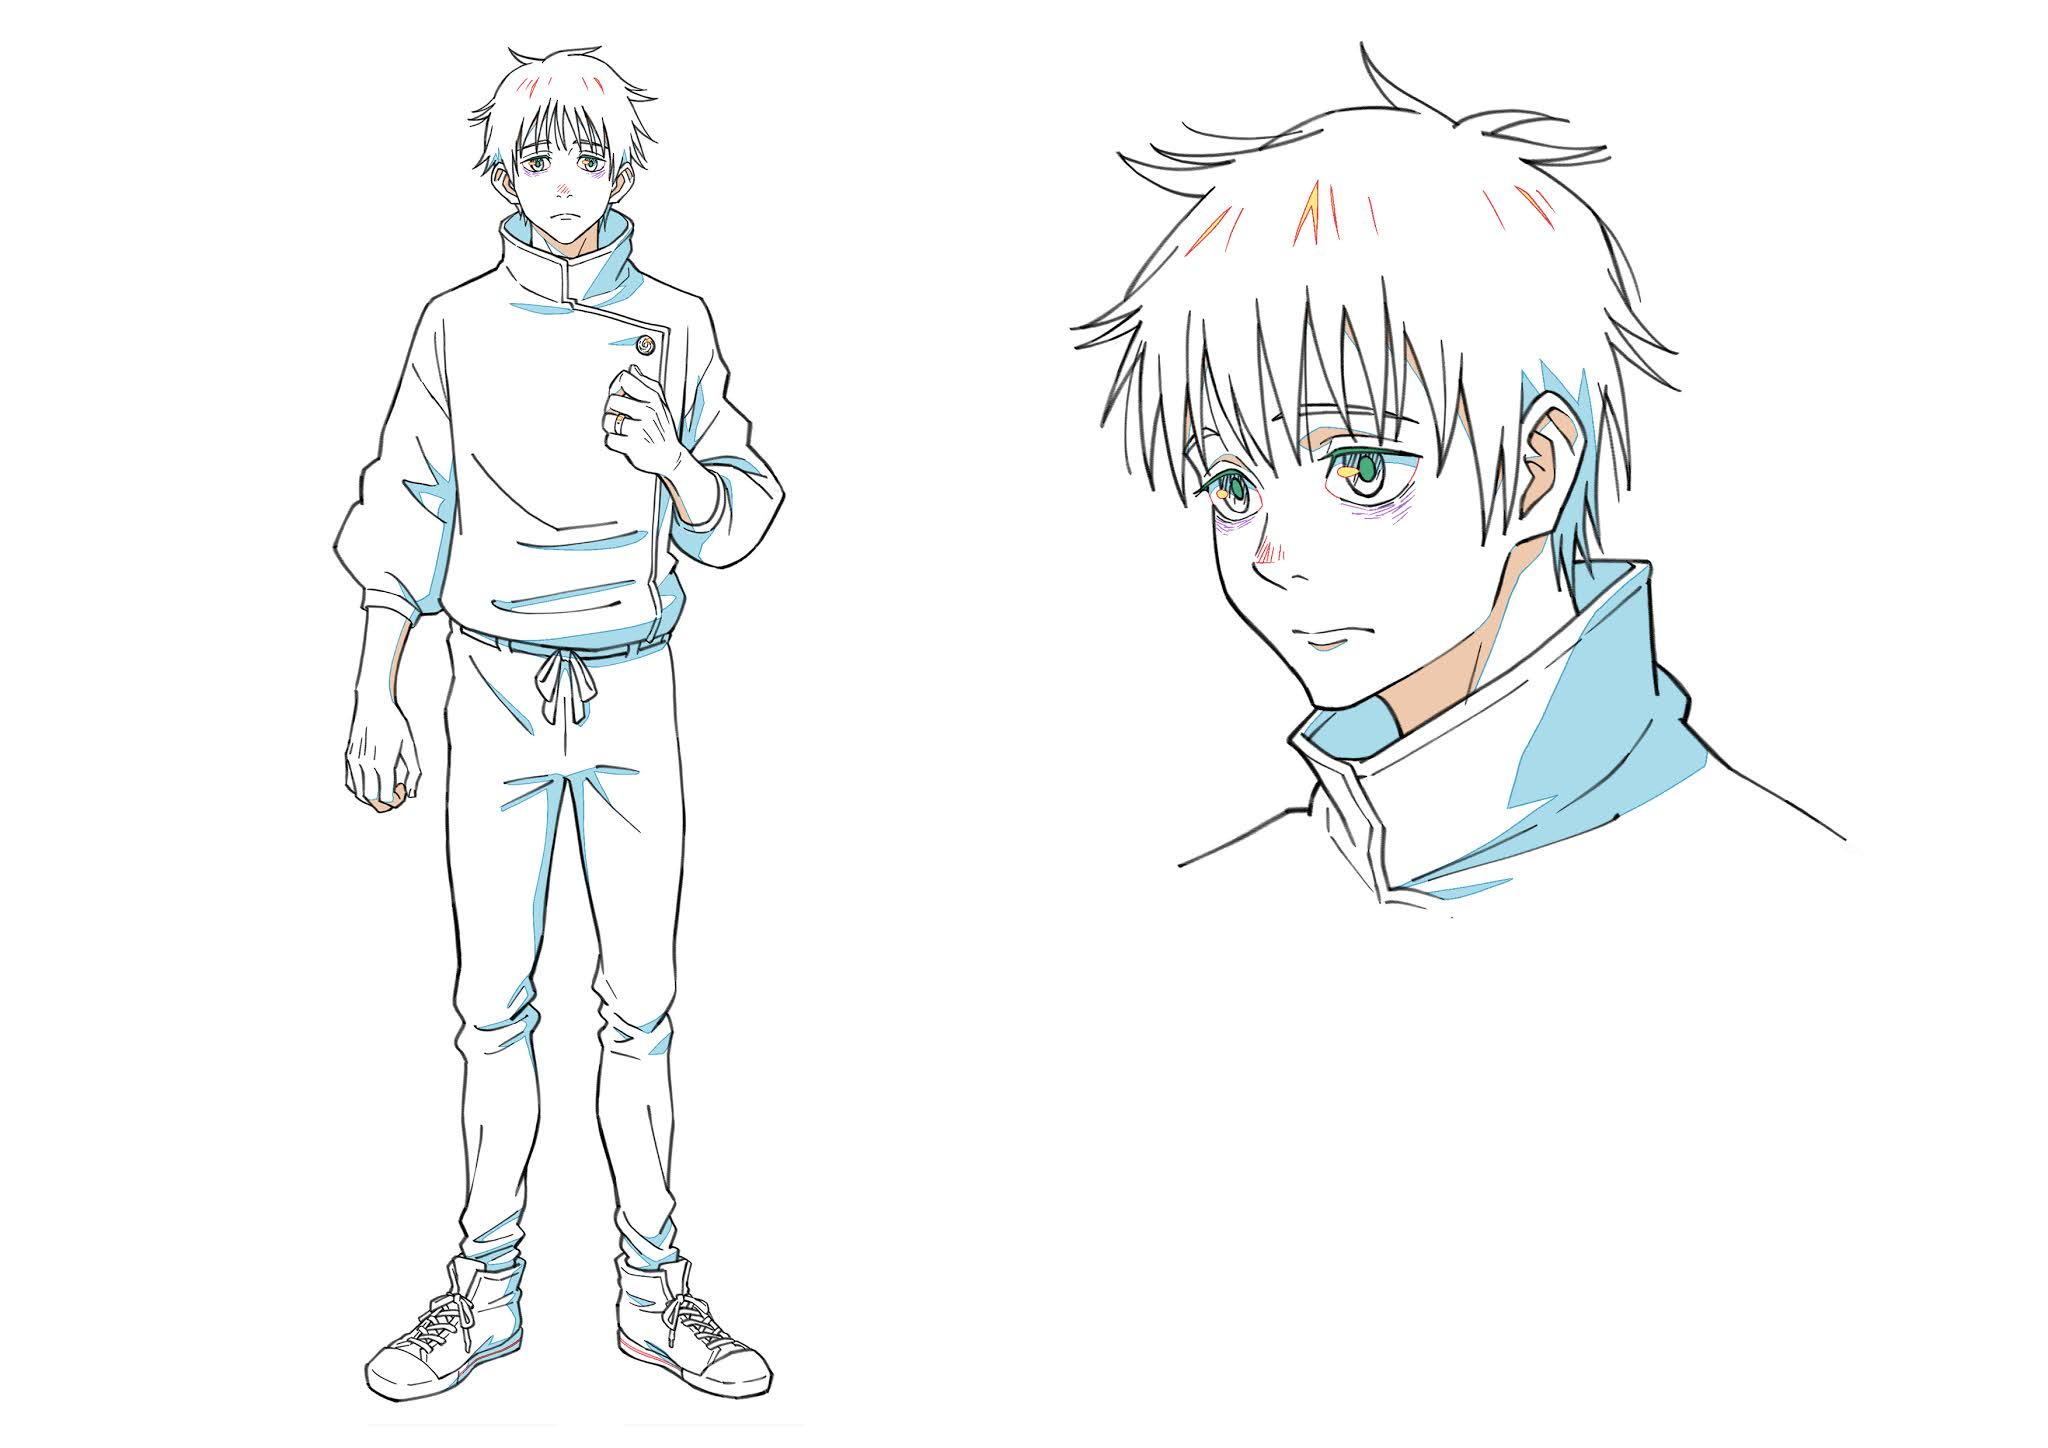 New Character Visuals for Jujutsu Kaisen 0 Movie Announced featuring Maki, Toge and Panda